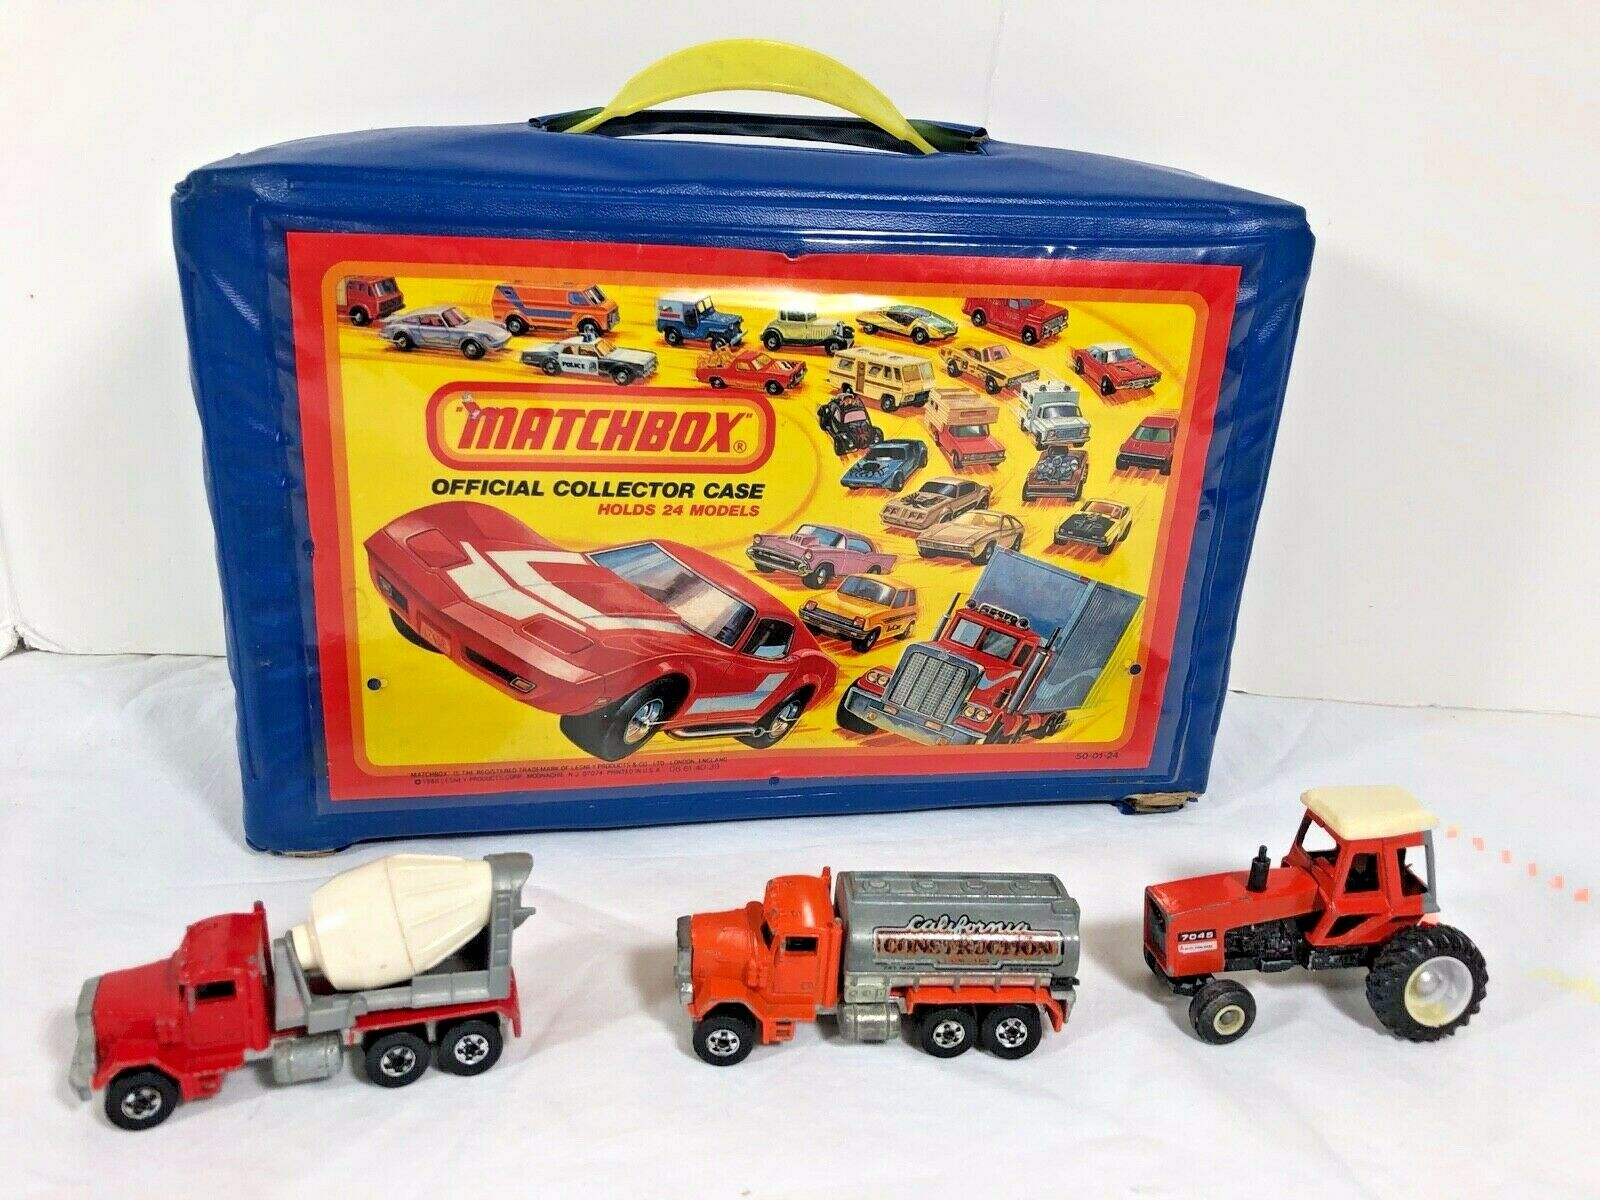 21 Hot Wheels   Matchbox vehicle 1970s collection & 1980 Official Collector Case